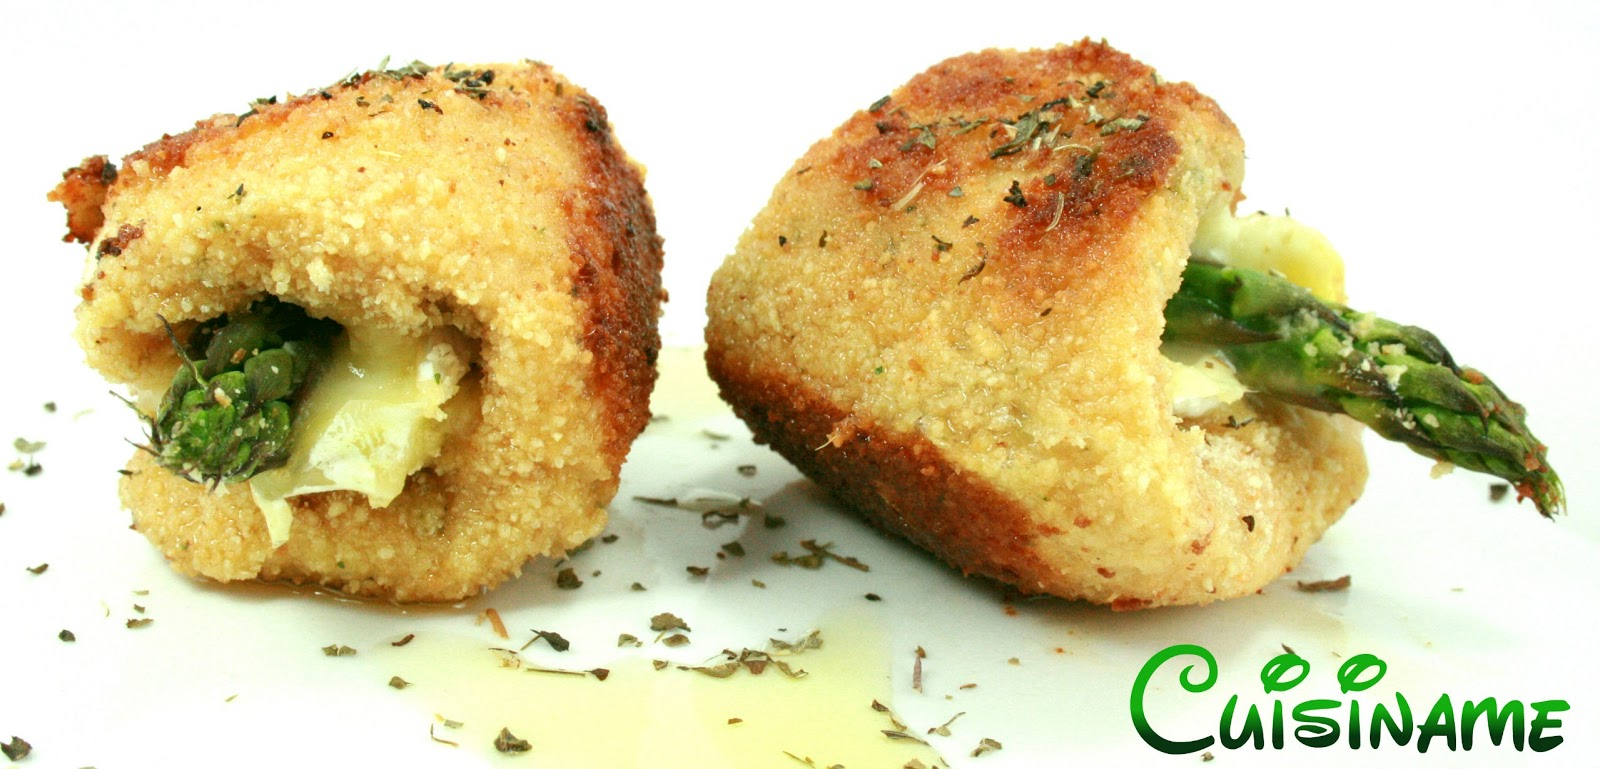 Cuisiname rollitos de pollo recetas originales for Comidas originales y faciles